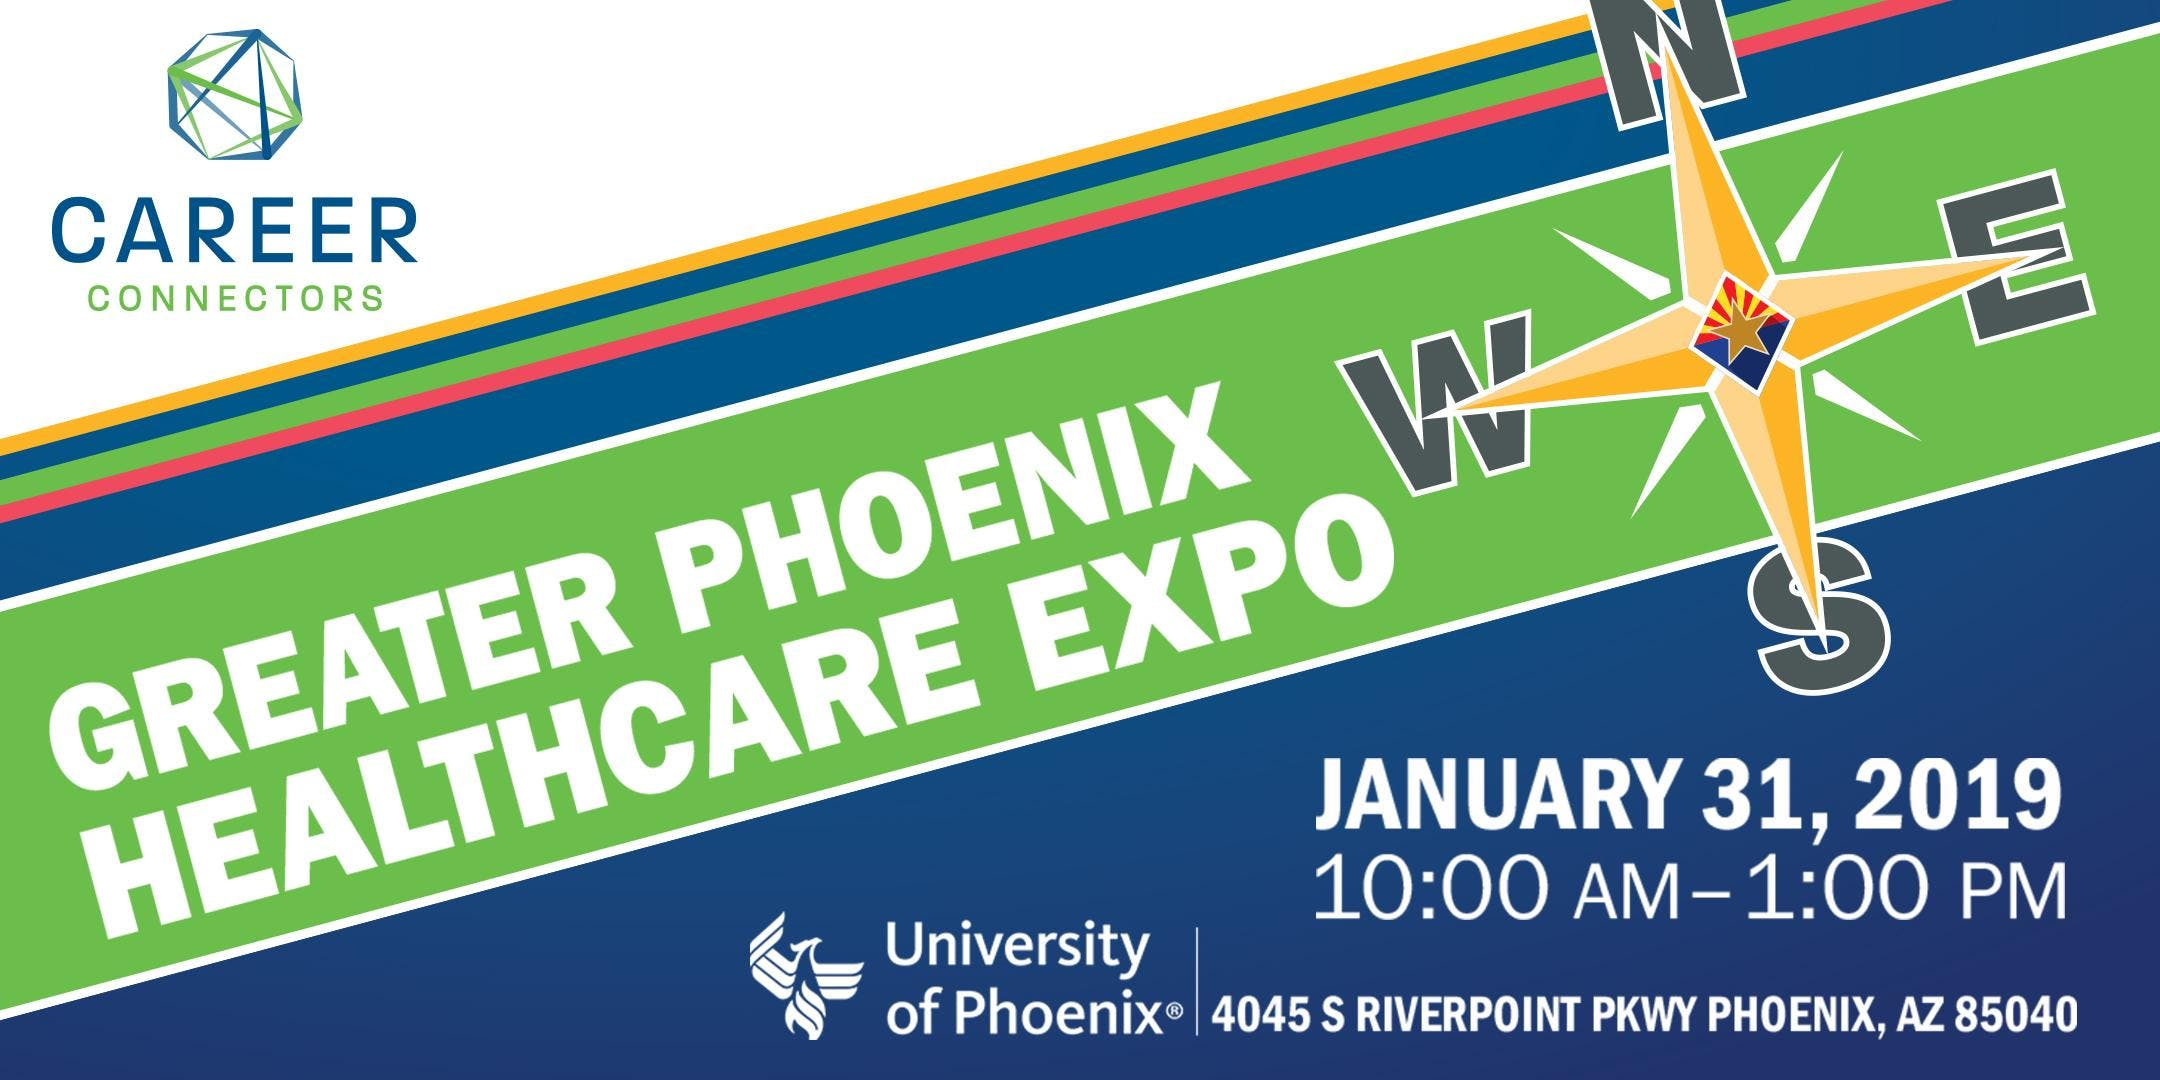 Greater Phoenix Healthcare Career Expo - January 31, 2019